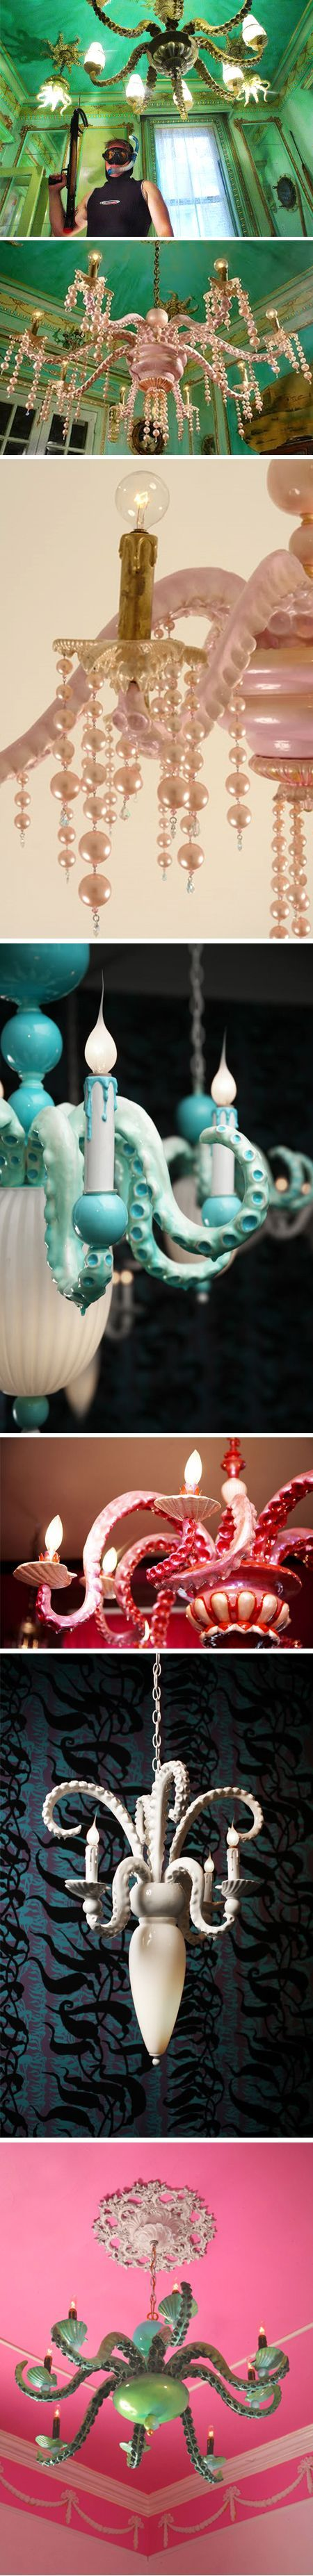 Awesome Octopus Chandeliers